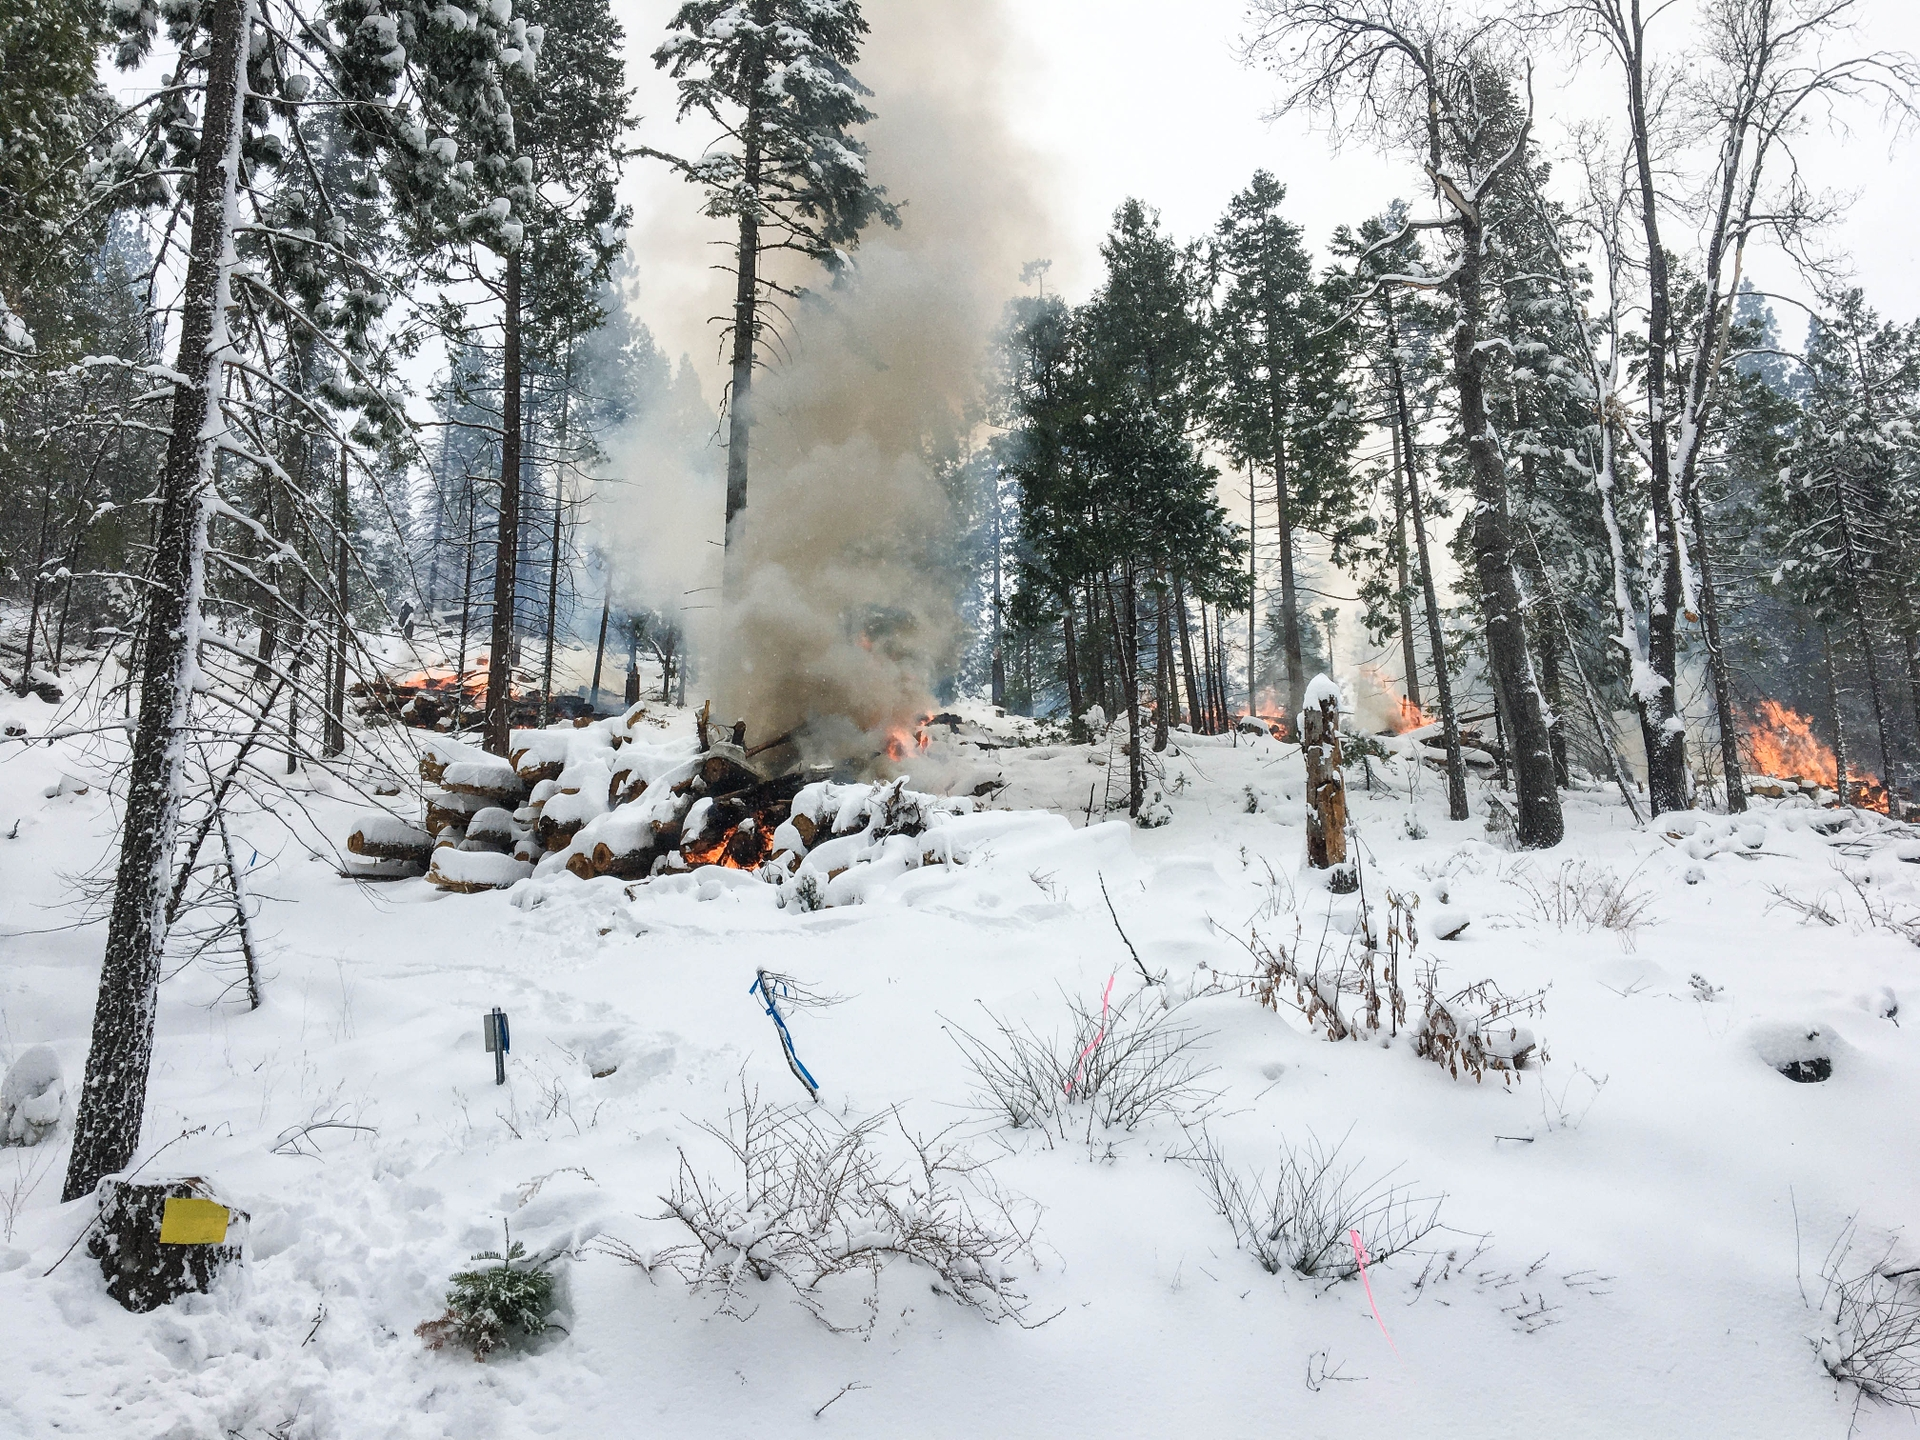 Snow in Shaver Lake provides the perfect conditions for SCE forestry staff to burn piles of trees that were cut to thin the forest.